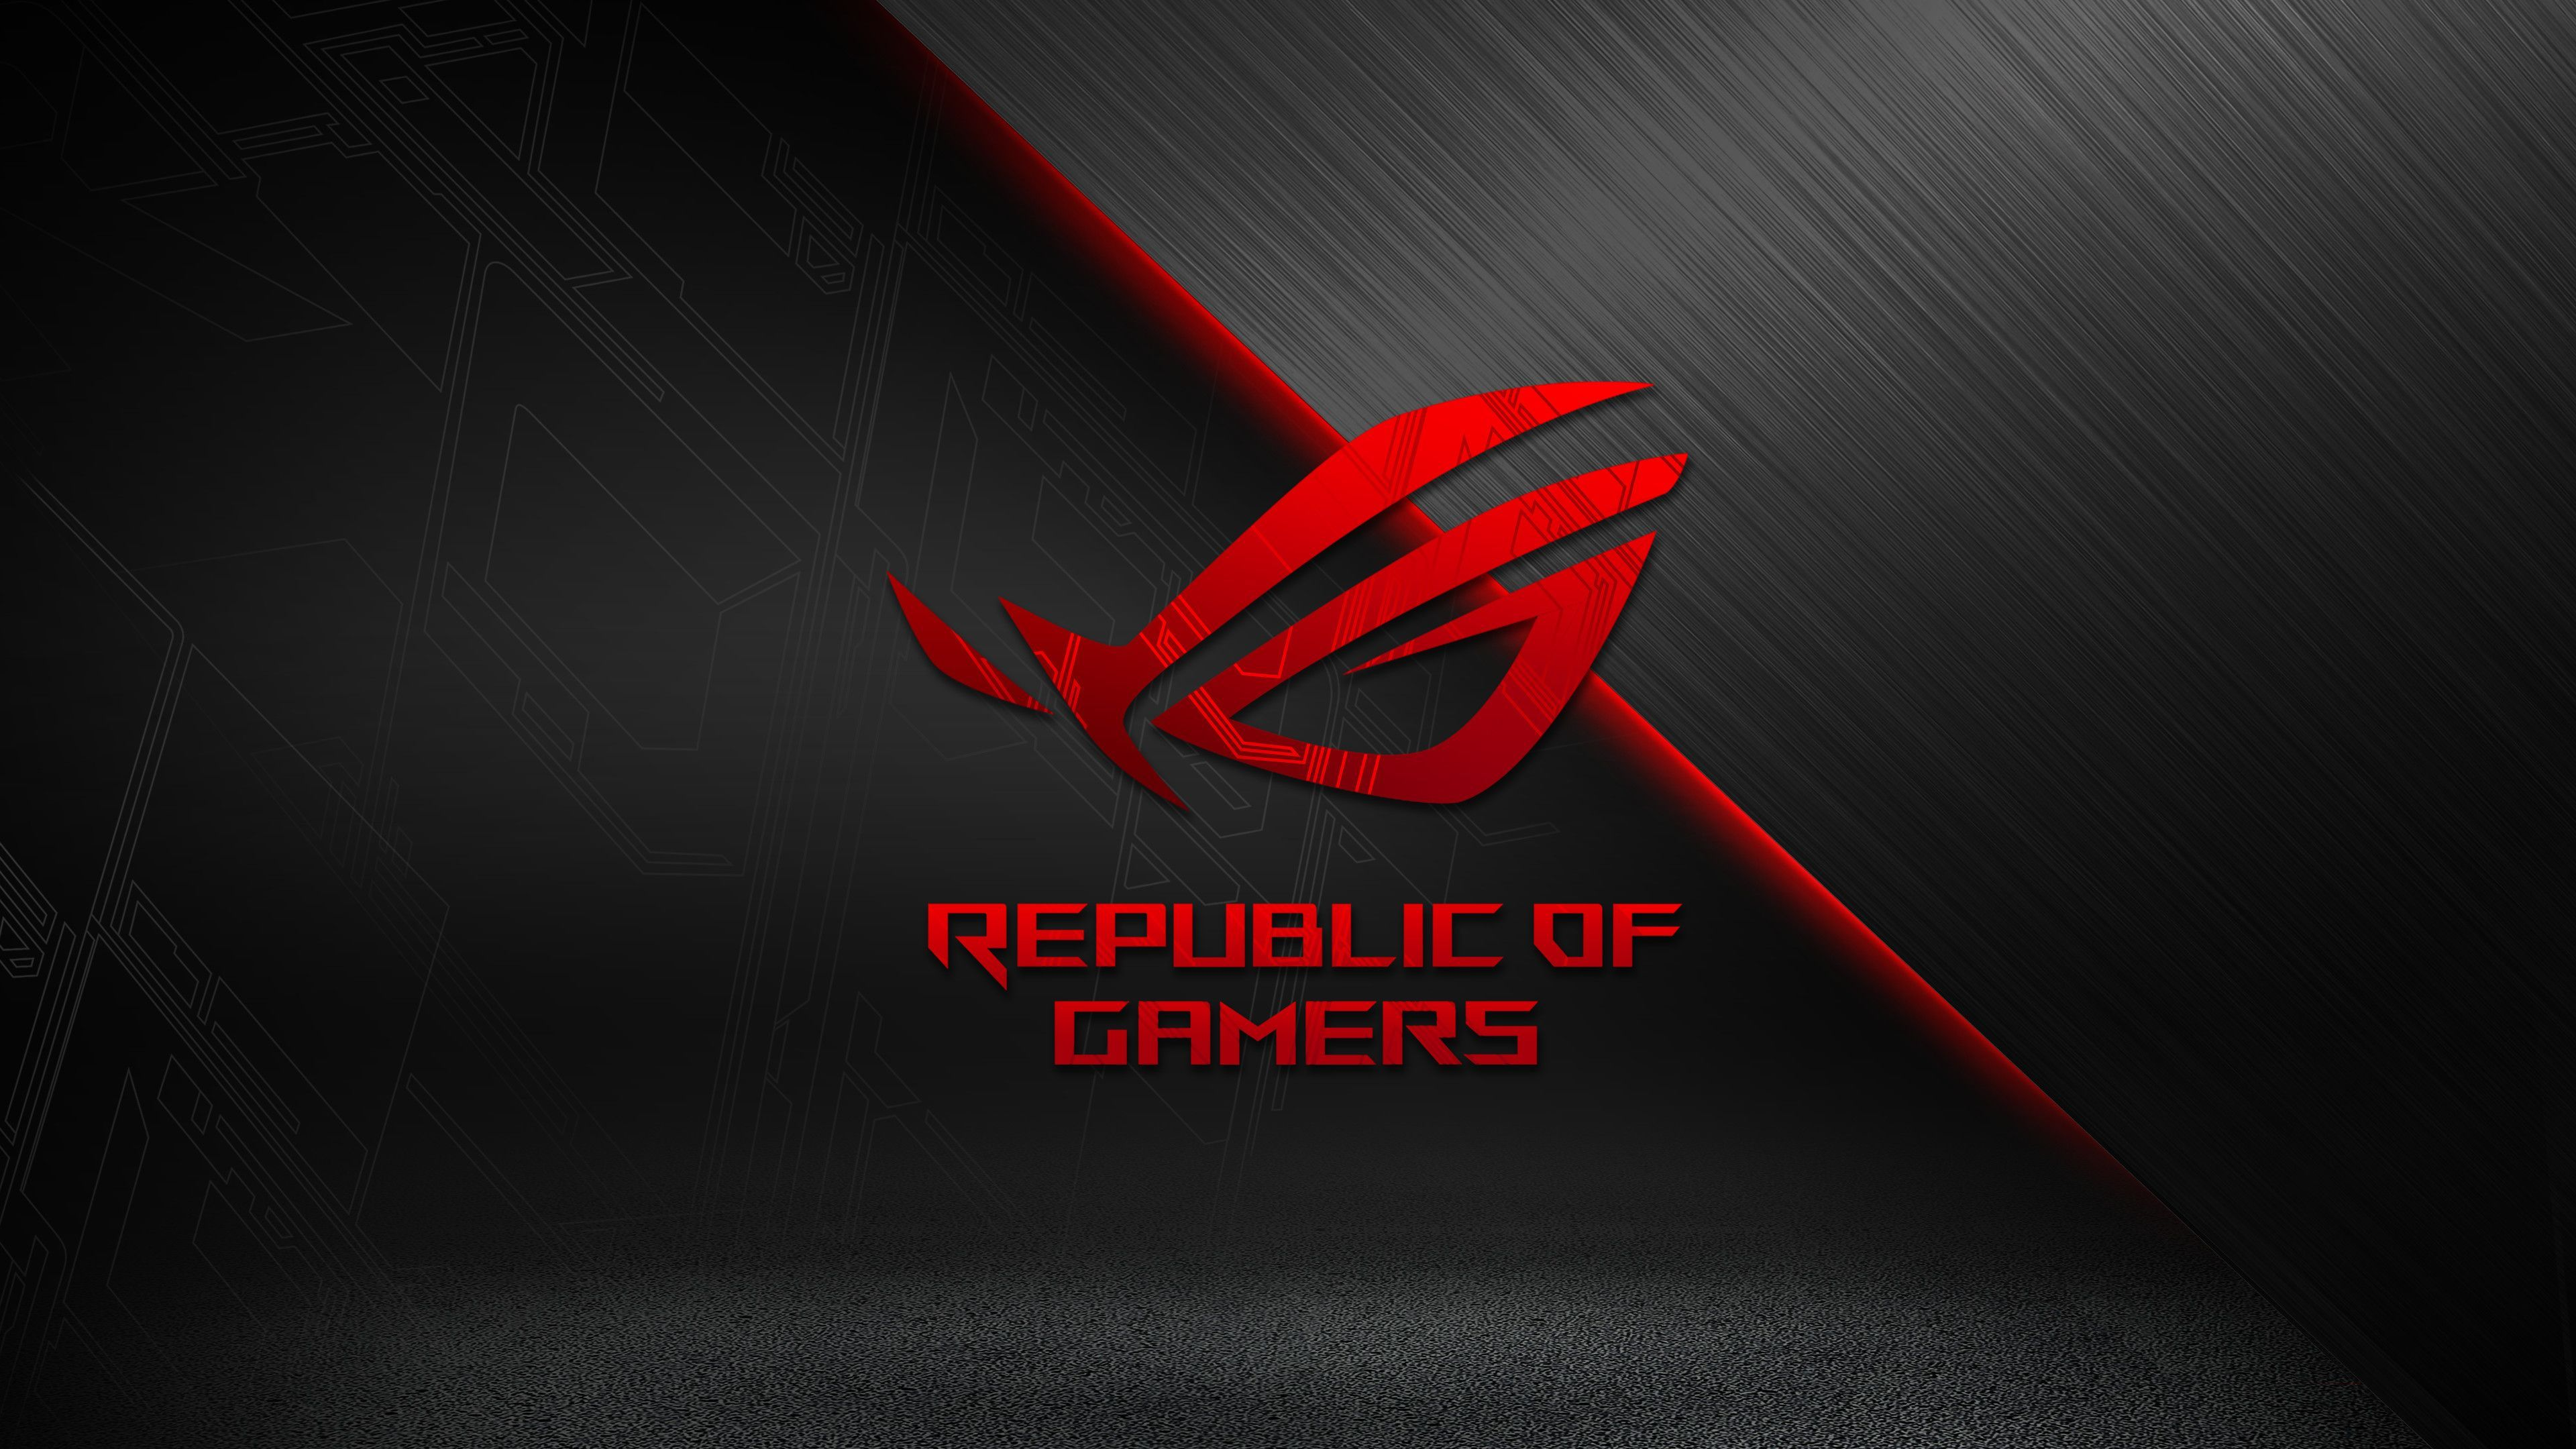 3840x2160 Republic of Gamers Wallpapers 85 background pictures 3840x2160